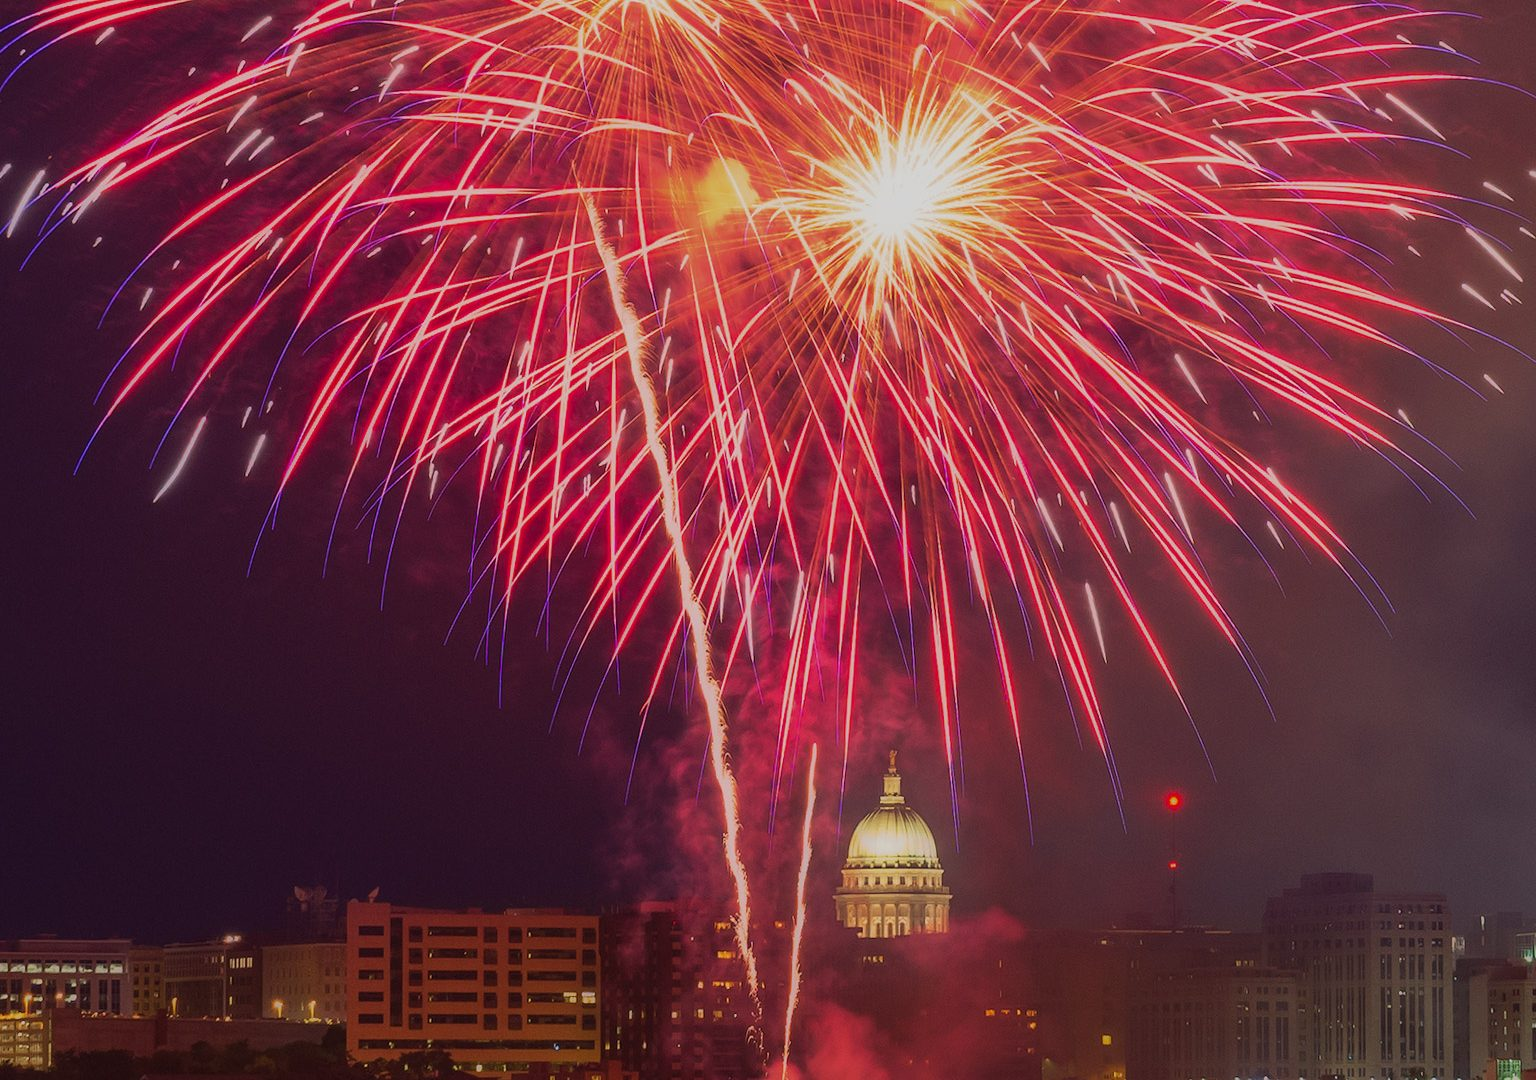 View from across a lake of fireworks erupting over the Madison, WI skyline at night